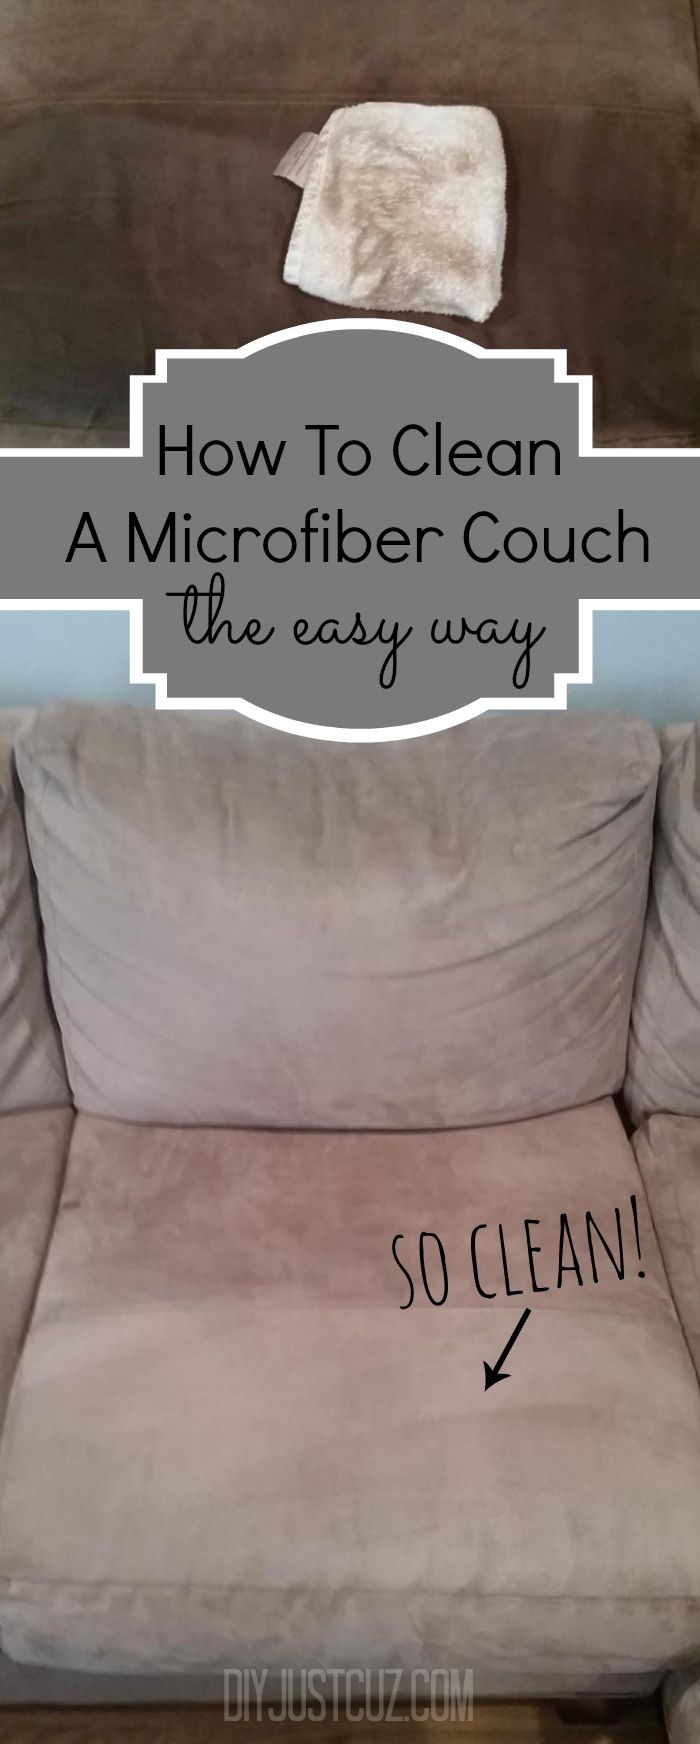 Cleaning A Microfiber Couch